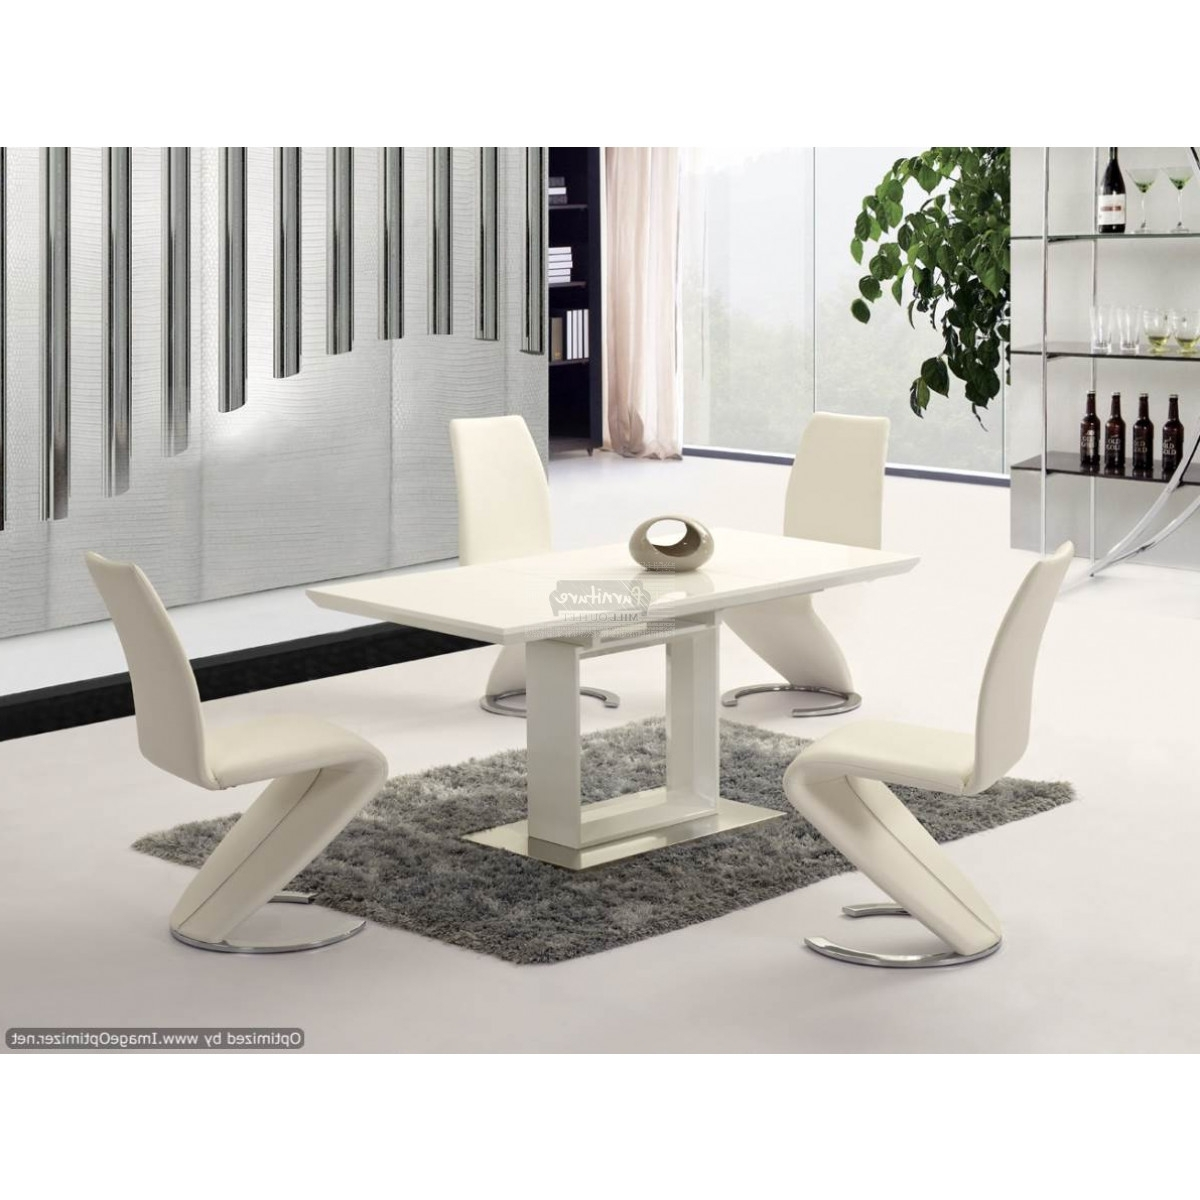 White Gloss Dining Tables 120Cm Inside Most Recently Released Space White High Gloss Extending Dining Table – 120Cm To 160Cm (View 2 of 25)